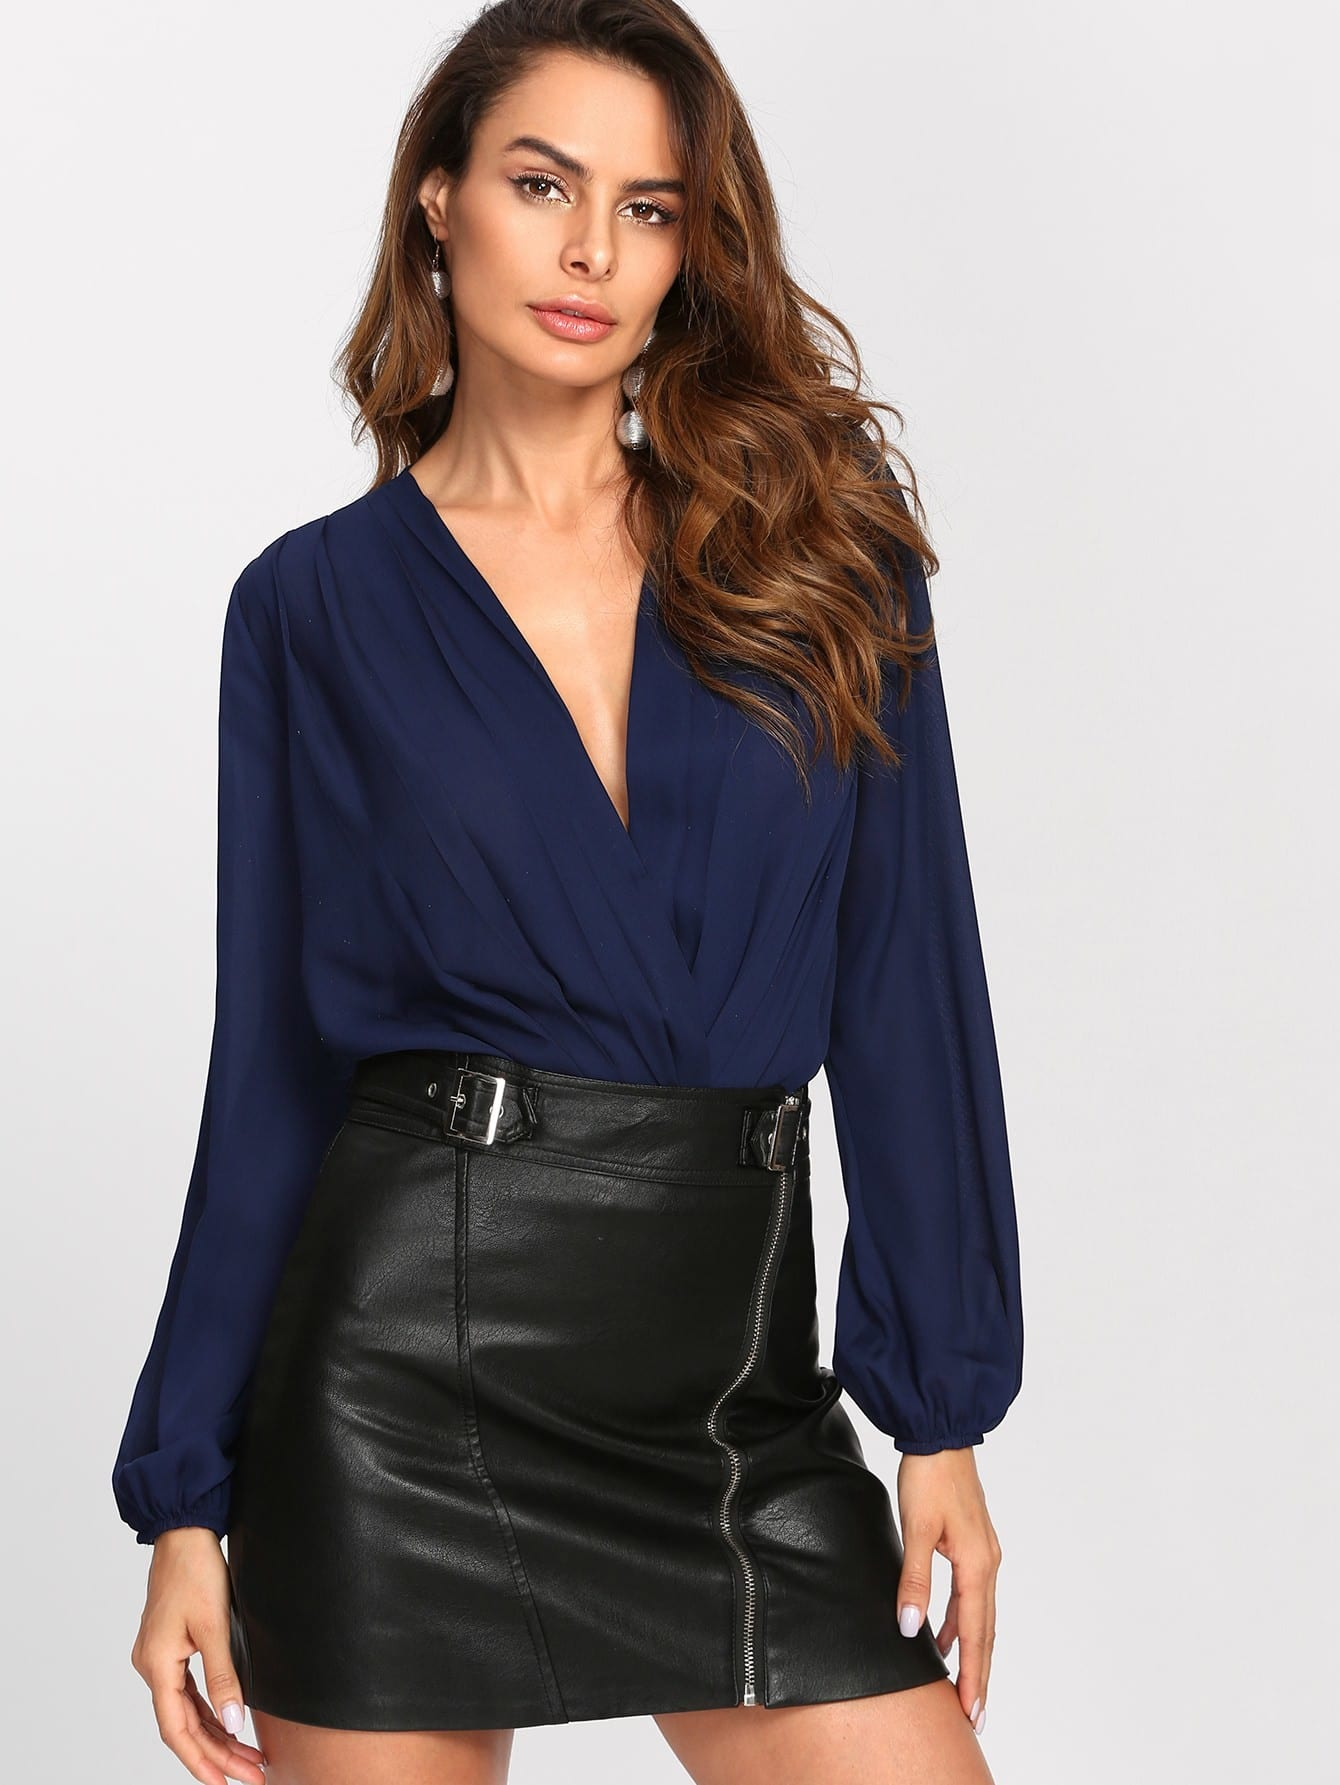 shein balloon-sleeve-pleated-surplice-blouse-bodysuit by sheinside